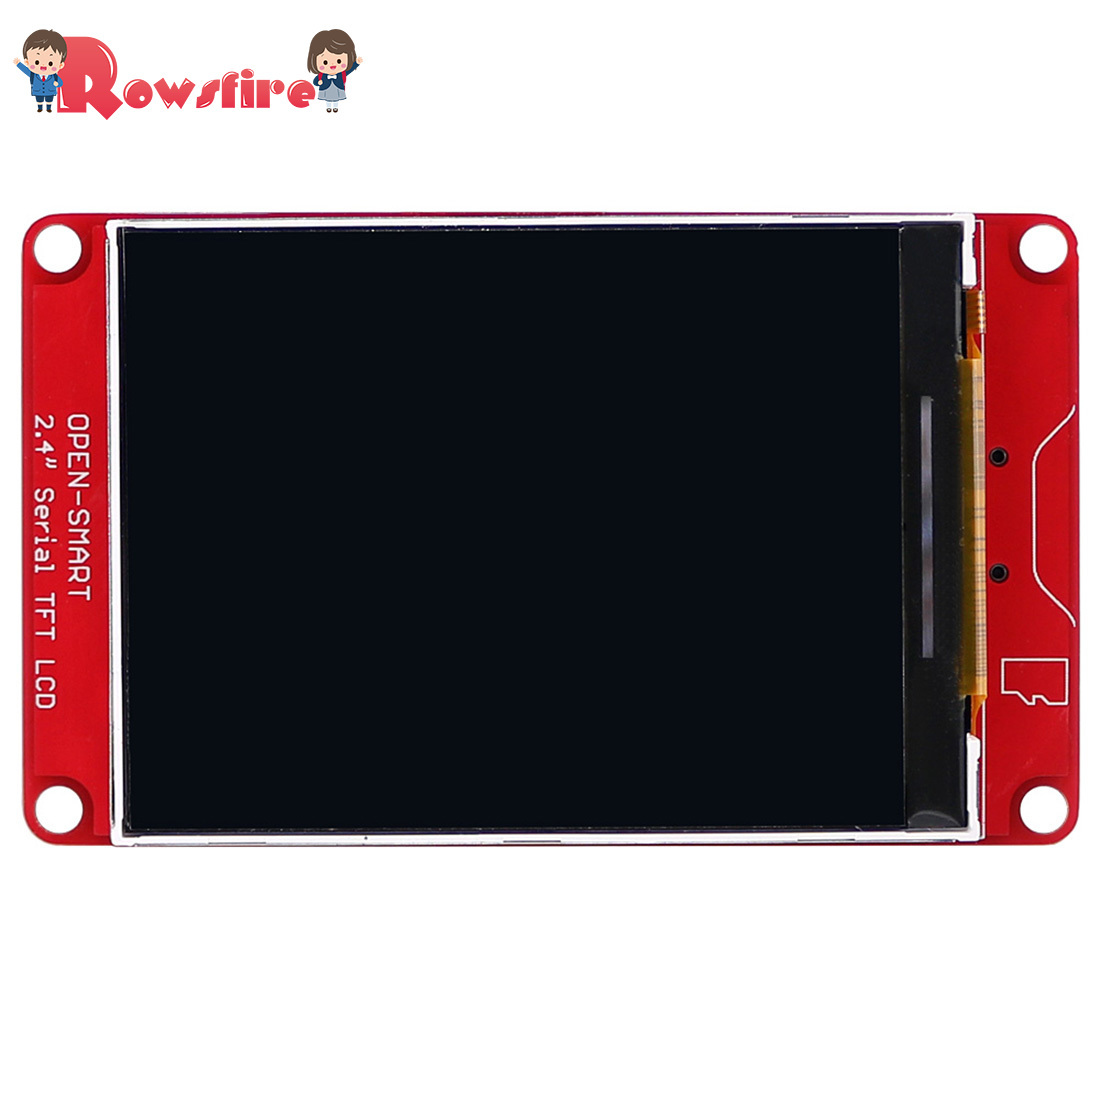 2.4 Inches UART Serial TFT LCD Expansion Shield For Arduino/ST/51/RPi